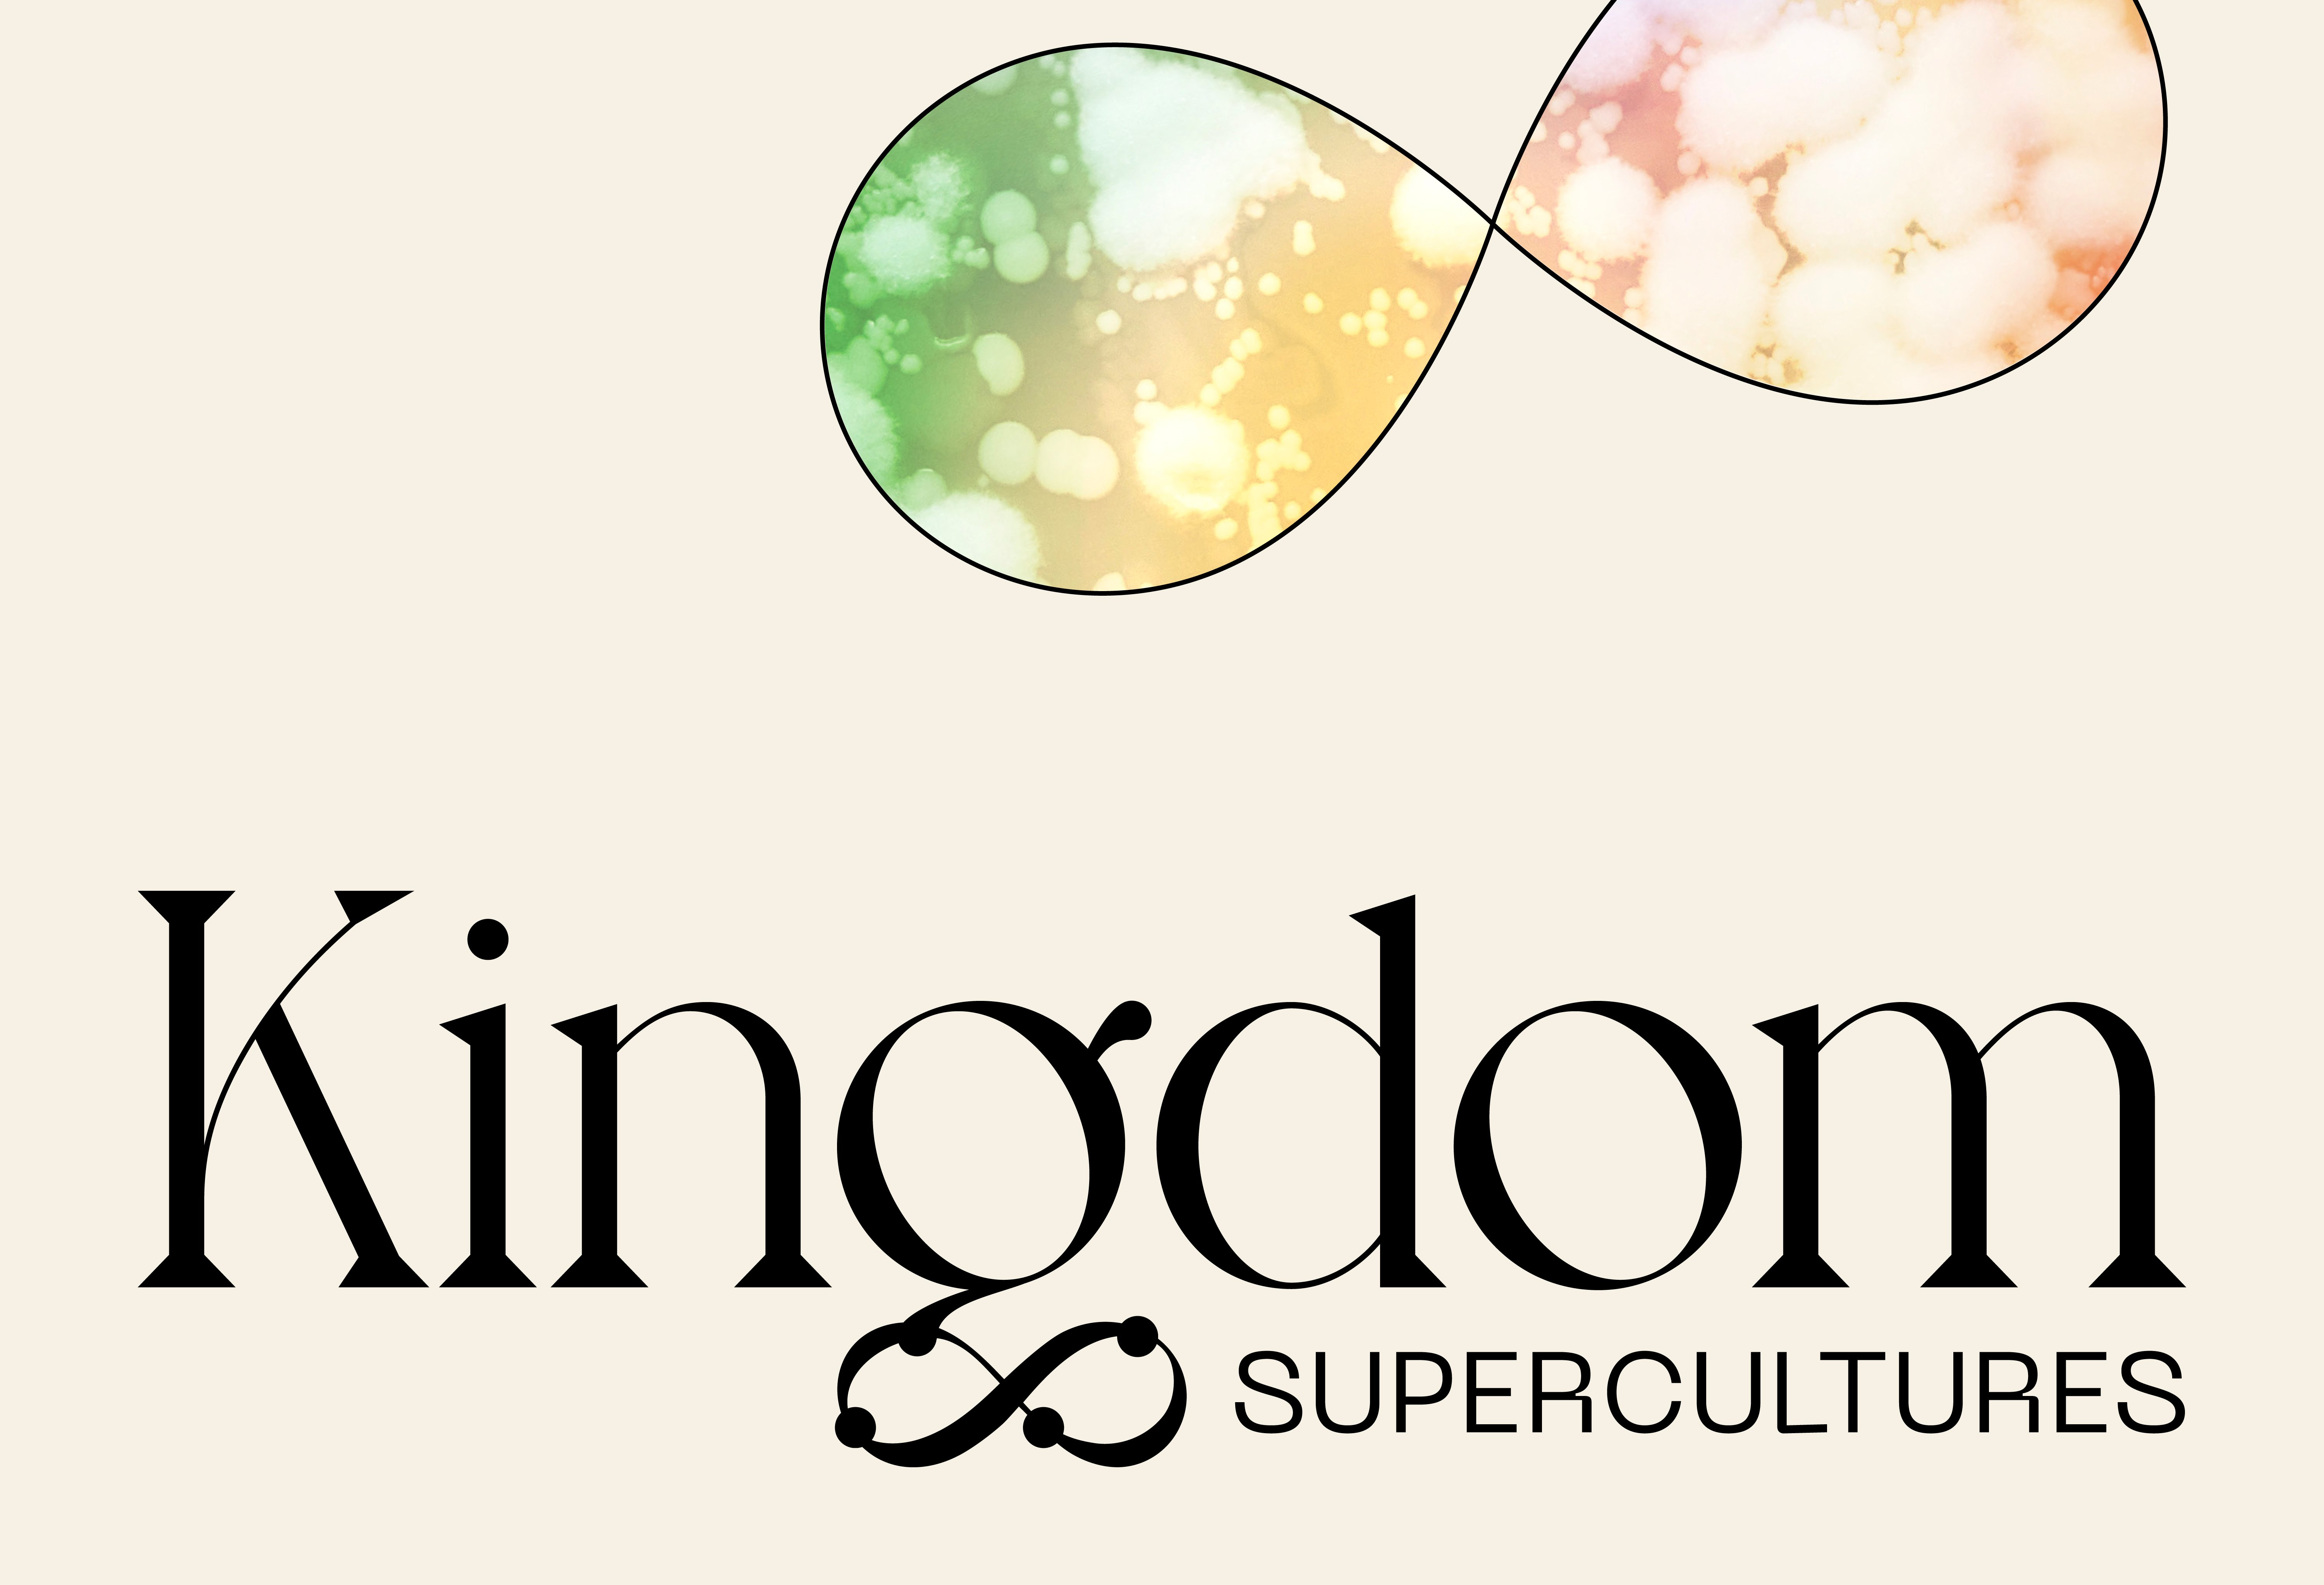 Kingdom Supercultures logo with custom infinity sign graphic, branding by RoAndCo